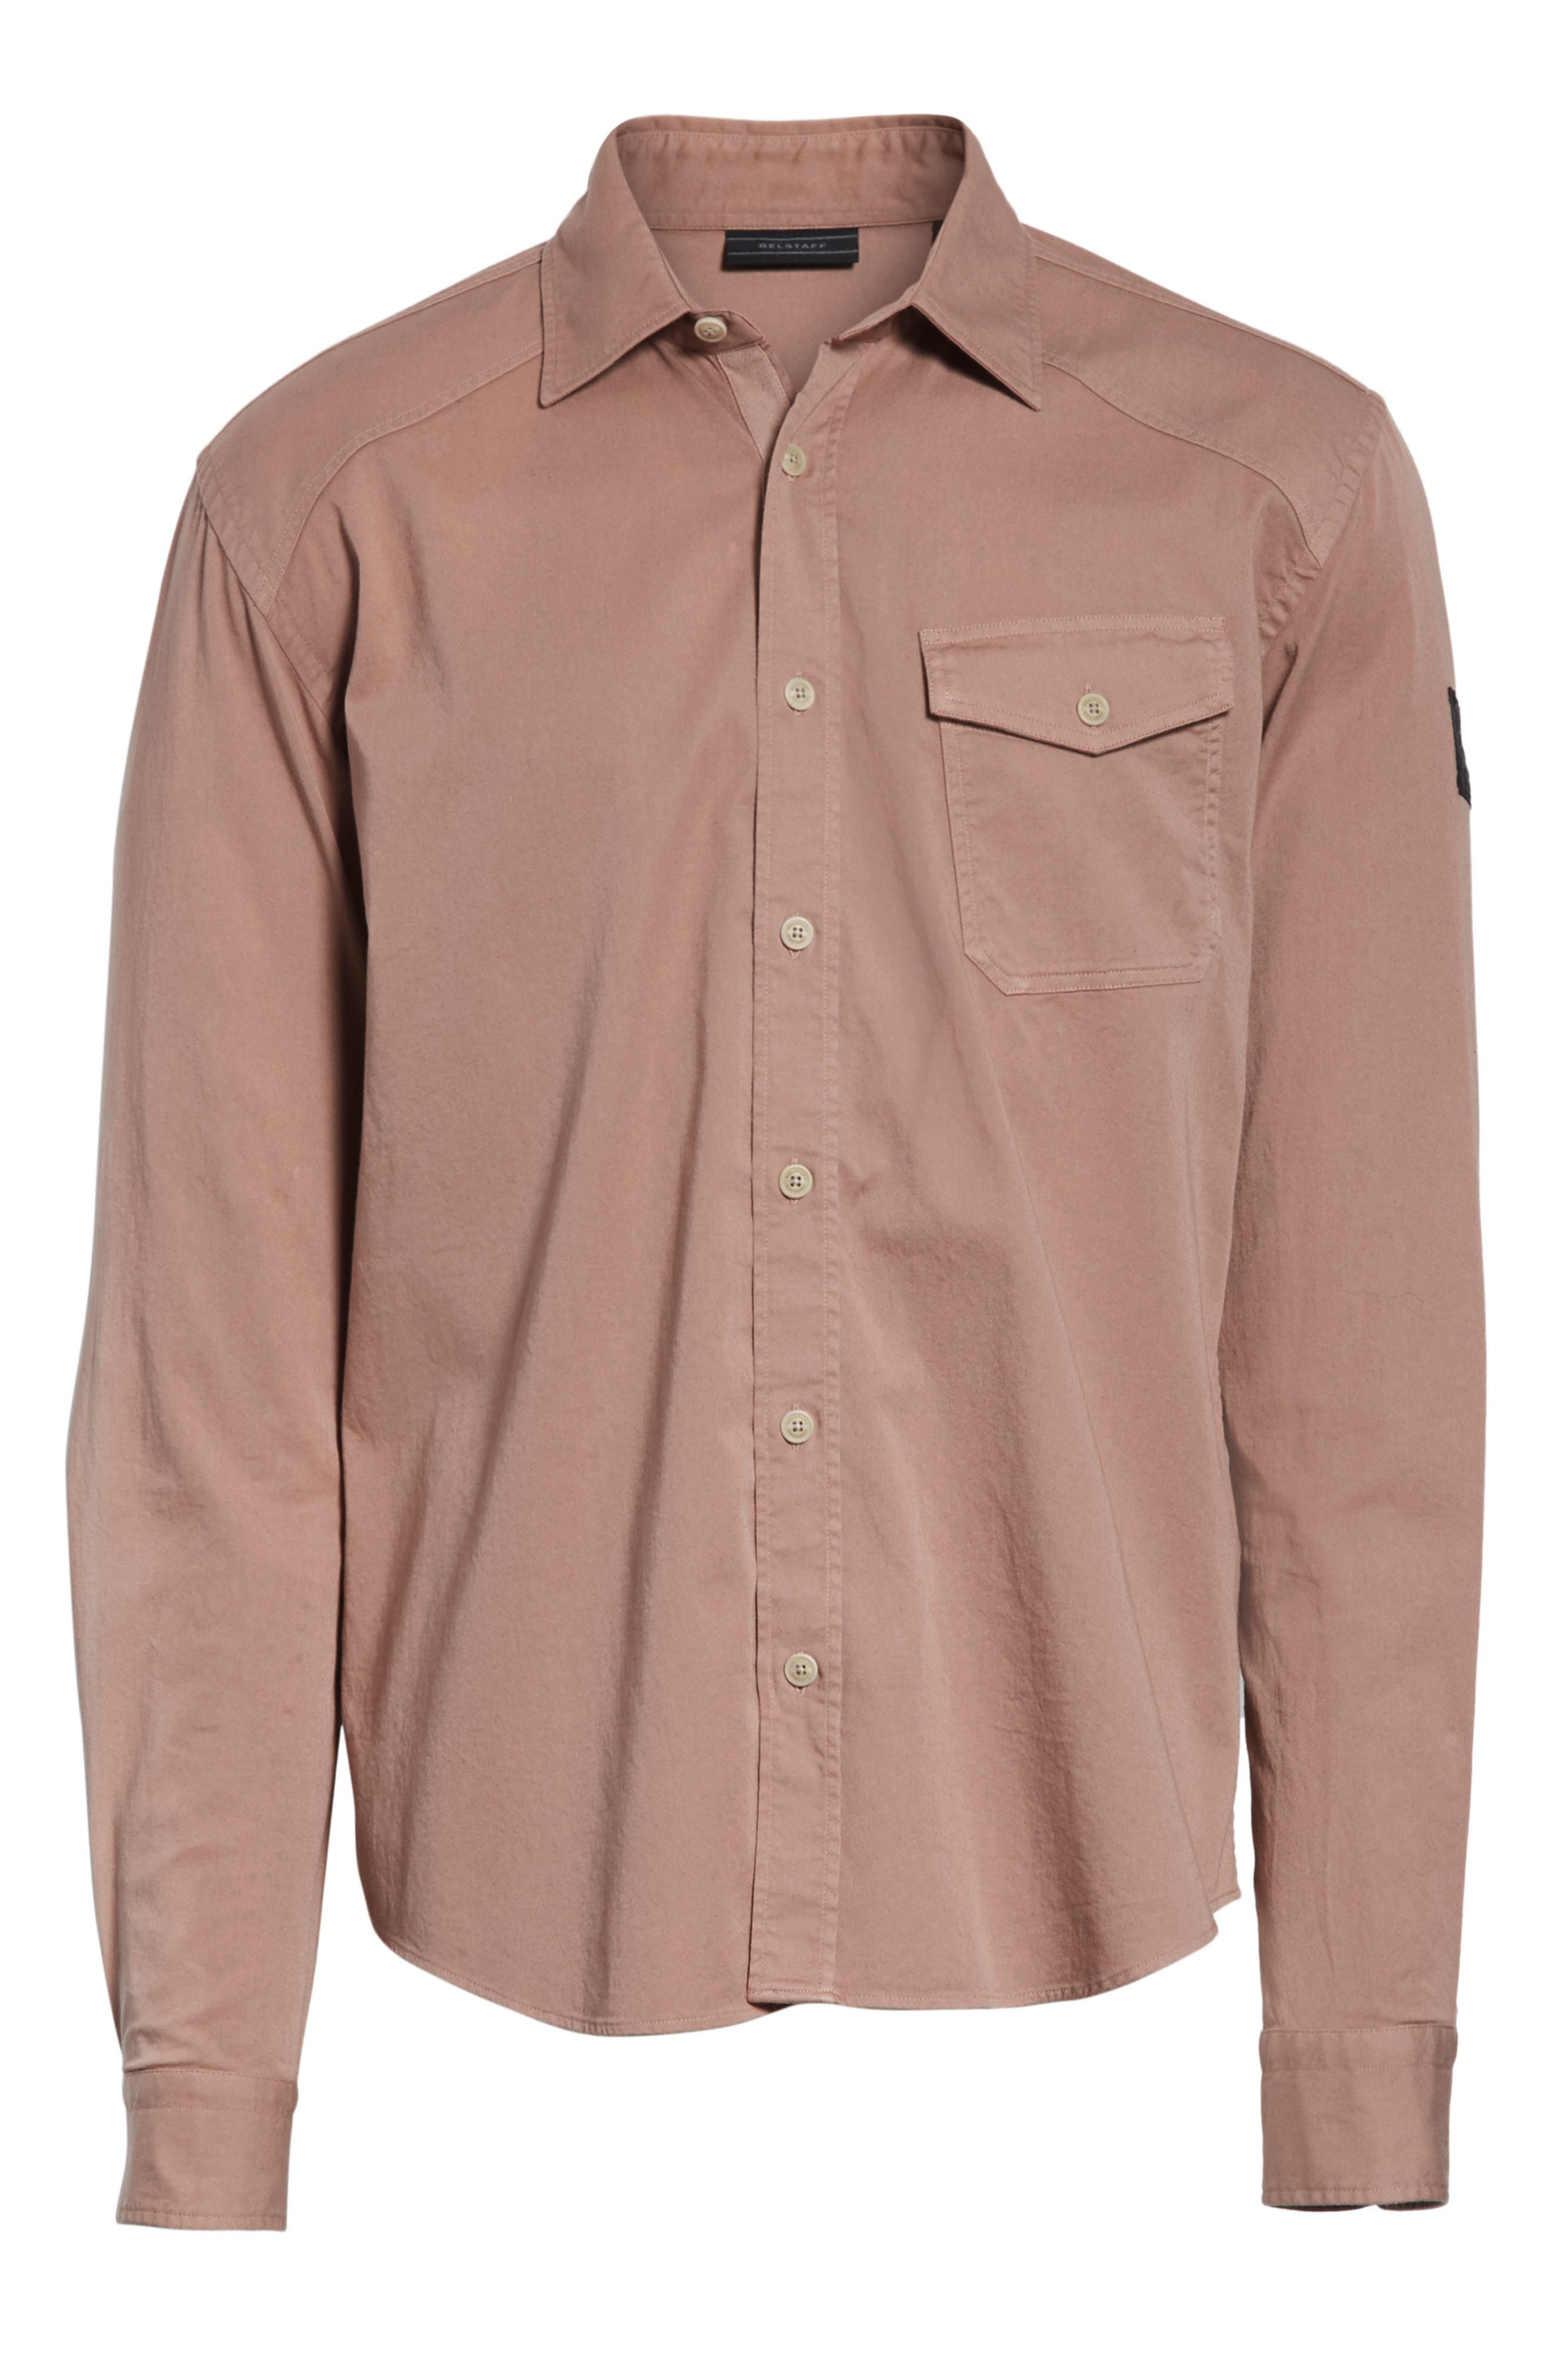 Steadway Extra Slim Fit Sport Shirt,                             Alternate thumbnail 28, color,